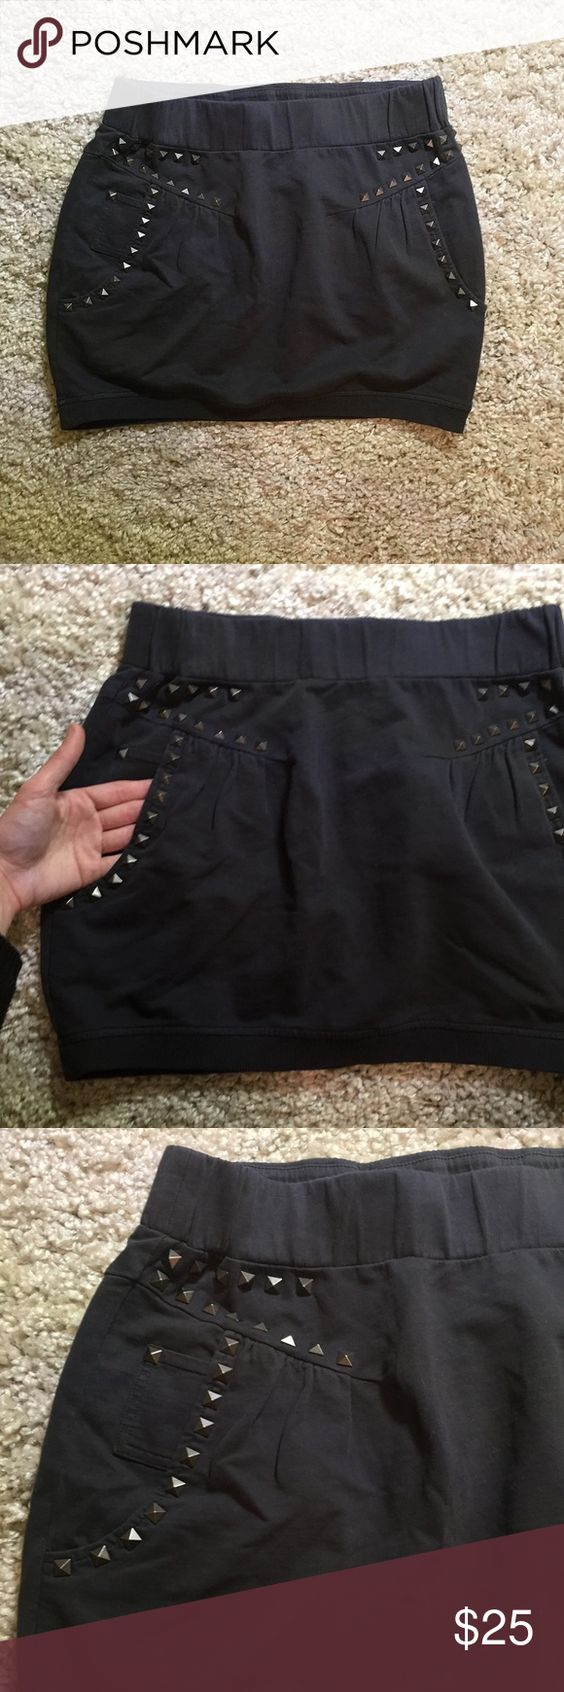 ZARA STUDDED SKIRT dark gray studded mini skirt from zara. sweatshirt like material. 100% cotton. side pockets. elasticize waistband. lightly worn. in great condition! fits a size medium.    🍃 10% off bundles! 🍃 always open to offers! 🍃 feel free to leave any questions or comments! Zara Skirts Mini